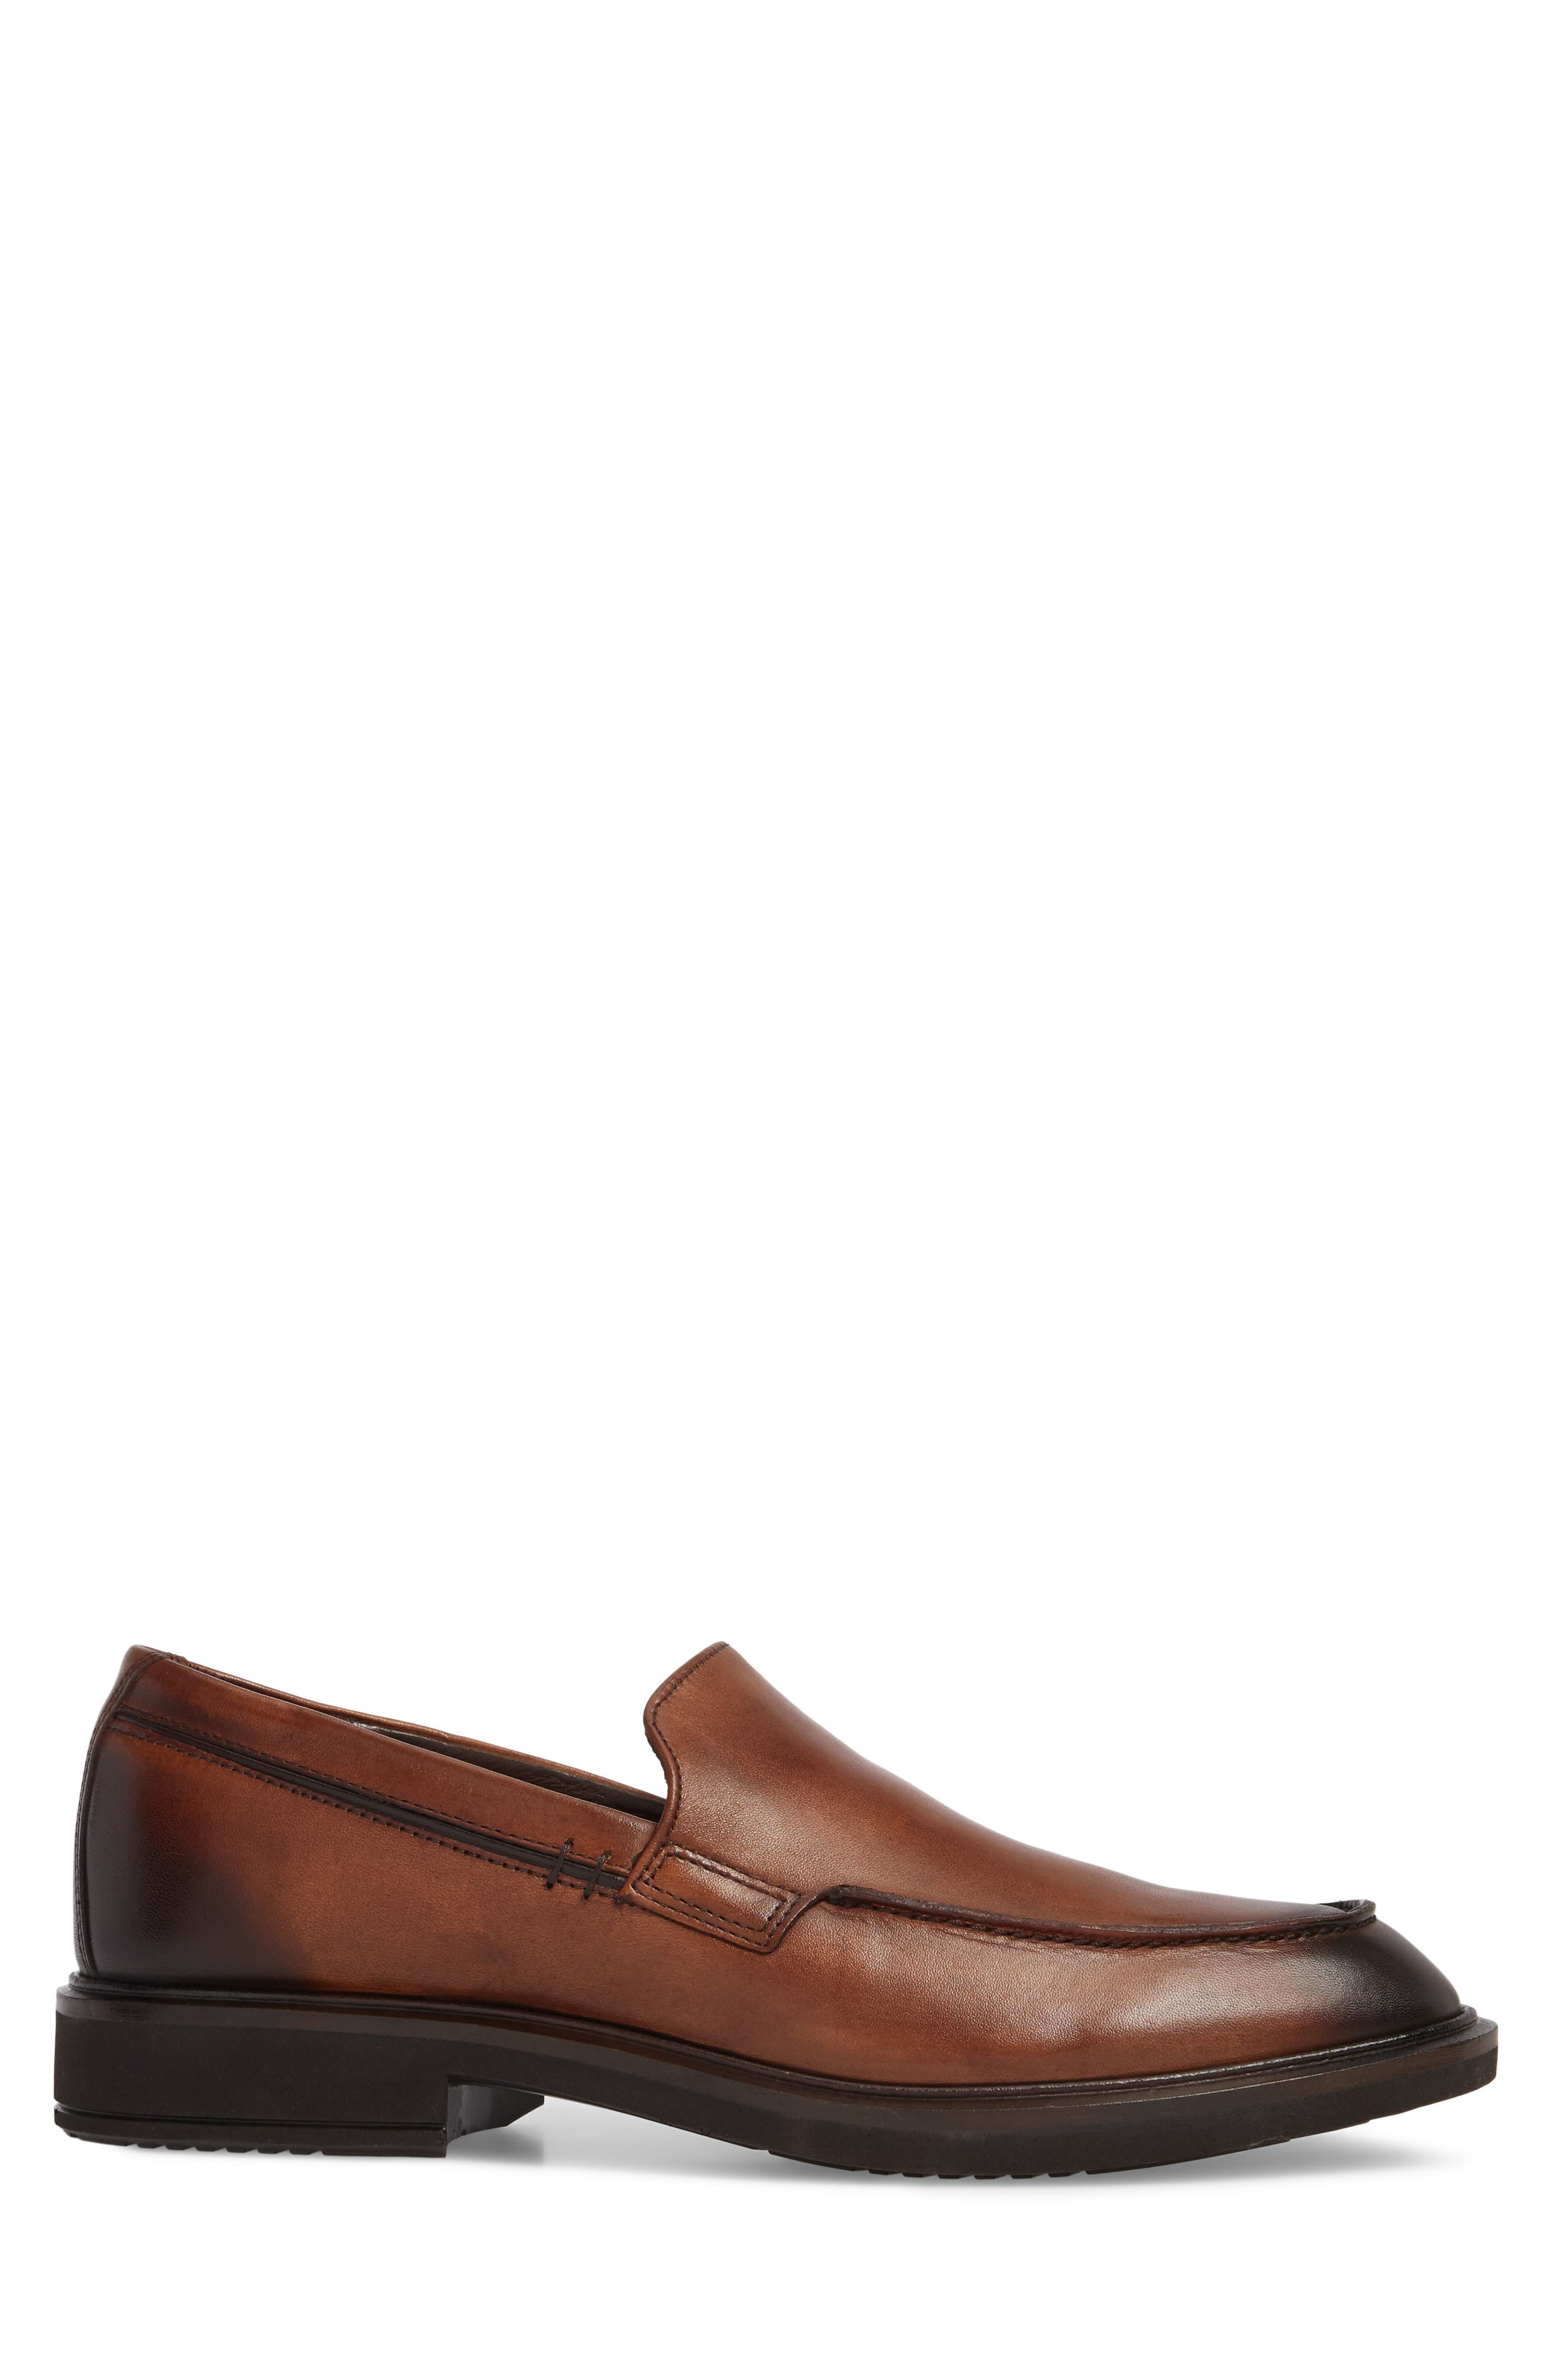 Alternate Image 3  - ECCO Vitrus II Apron Toe Loafer (Men)